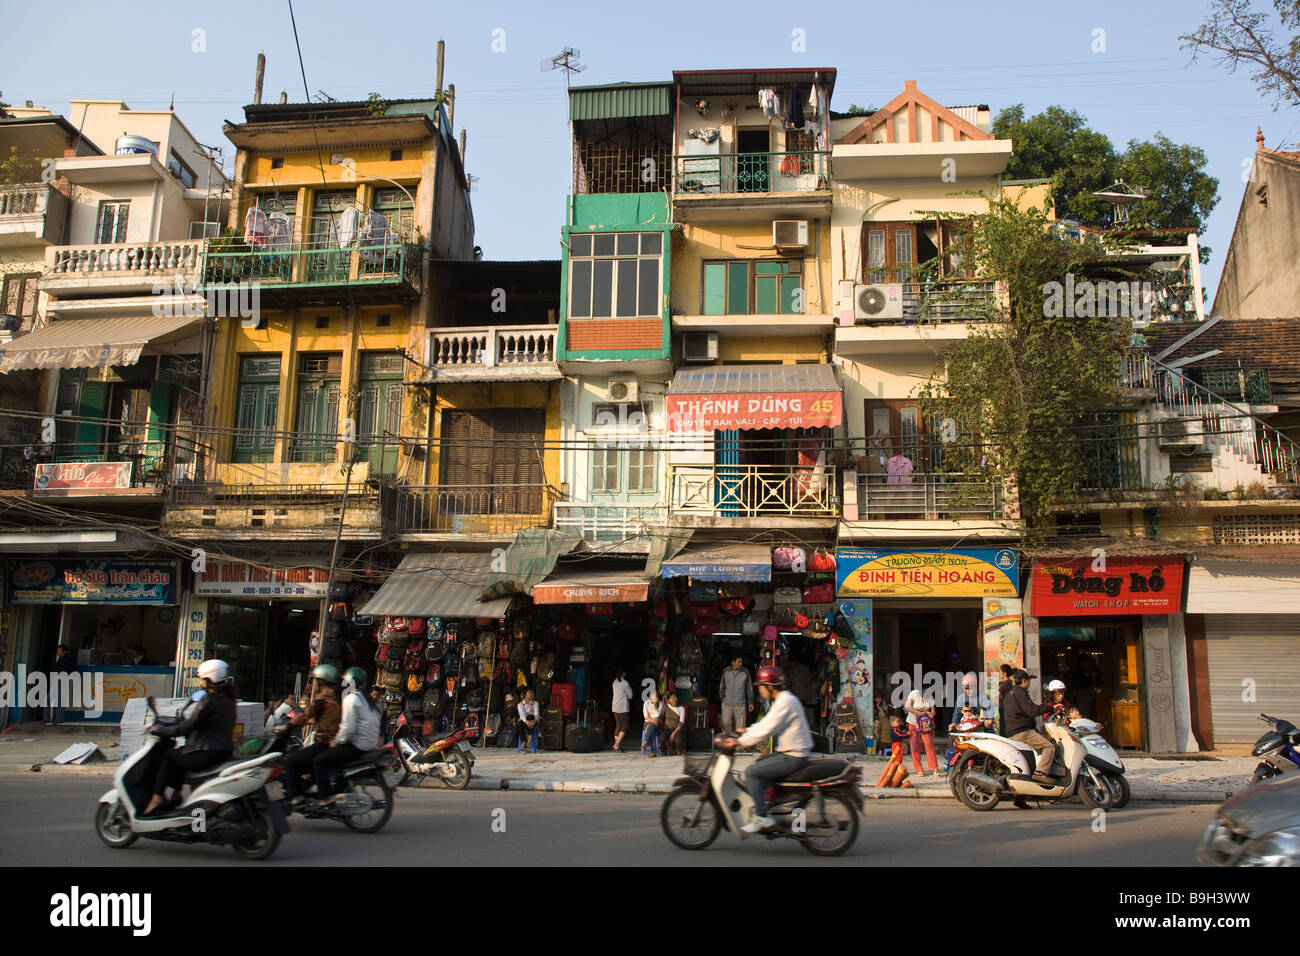 Streetscene with Traffic Hanoi Vietnam - Stock Image